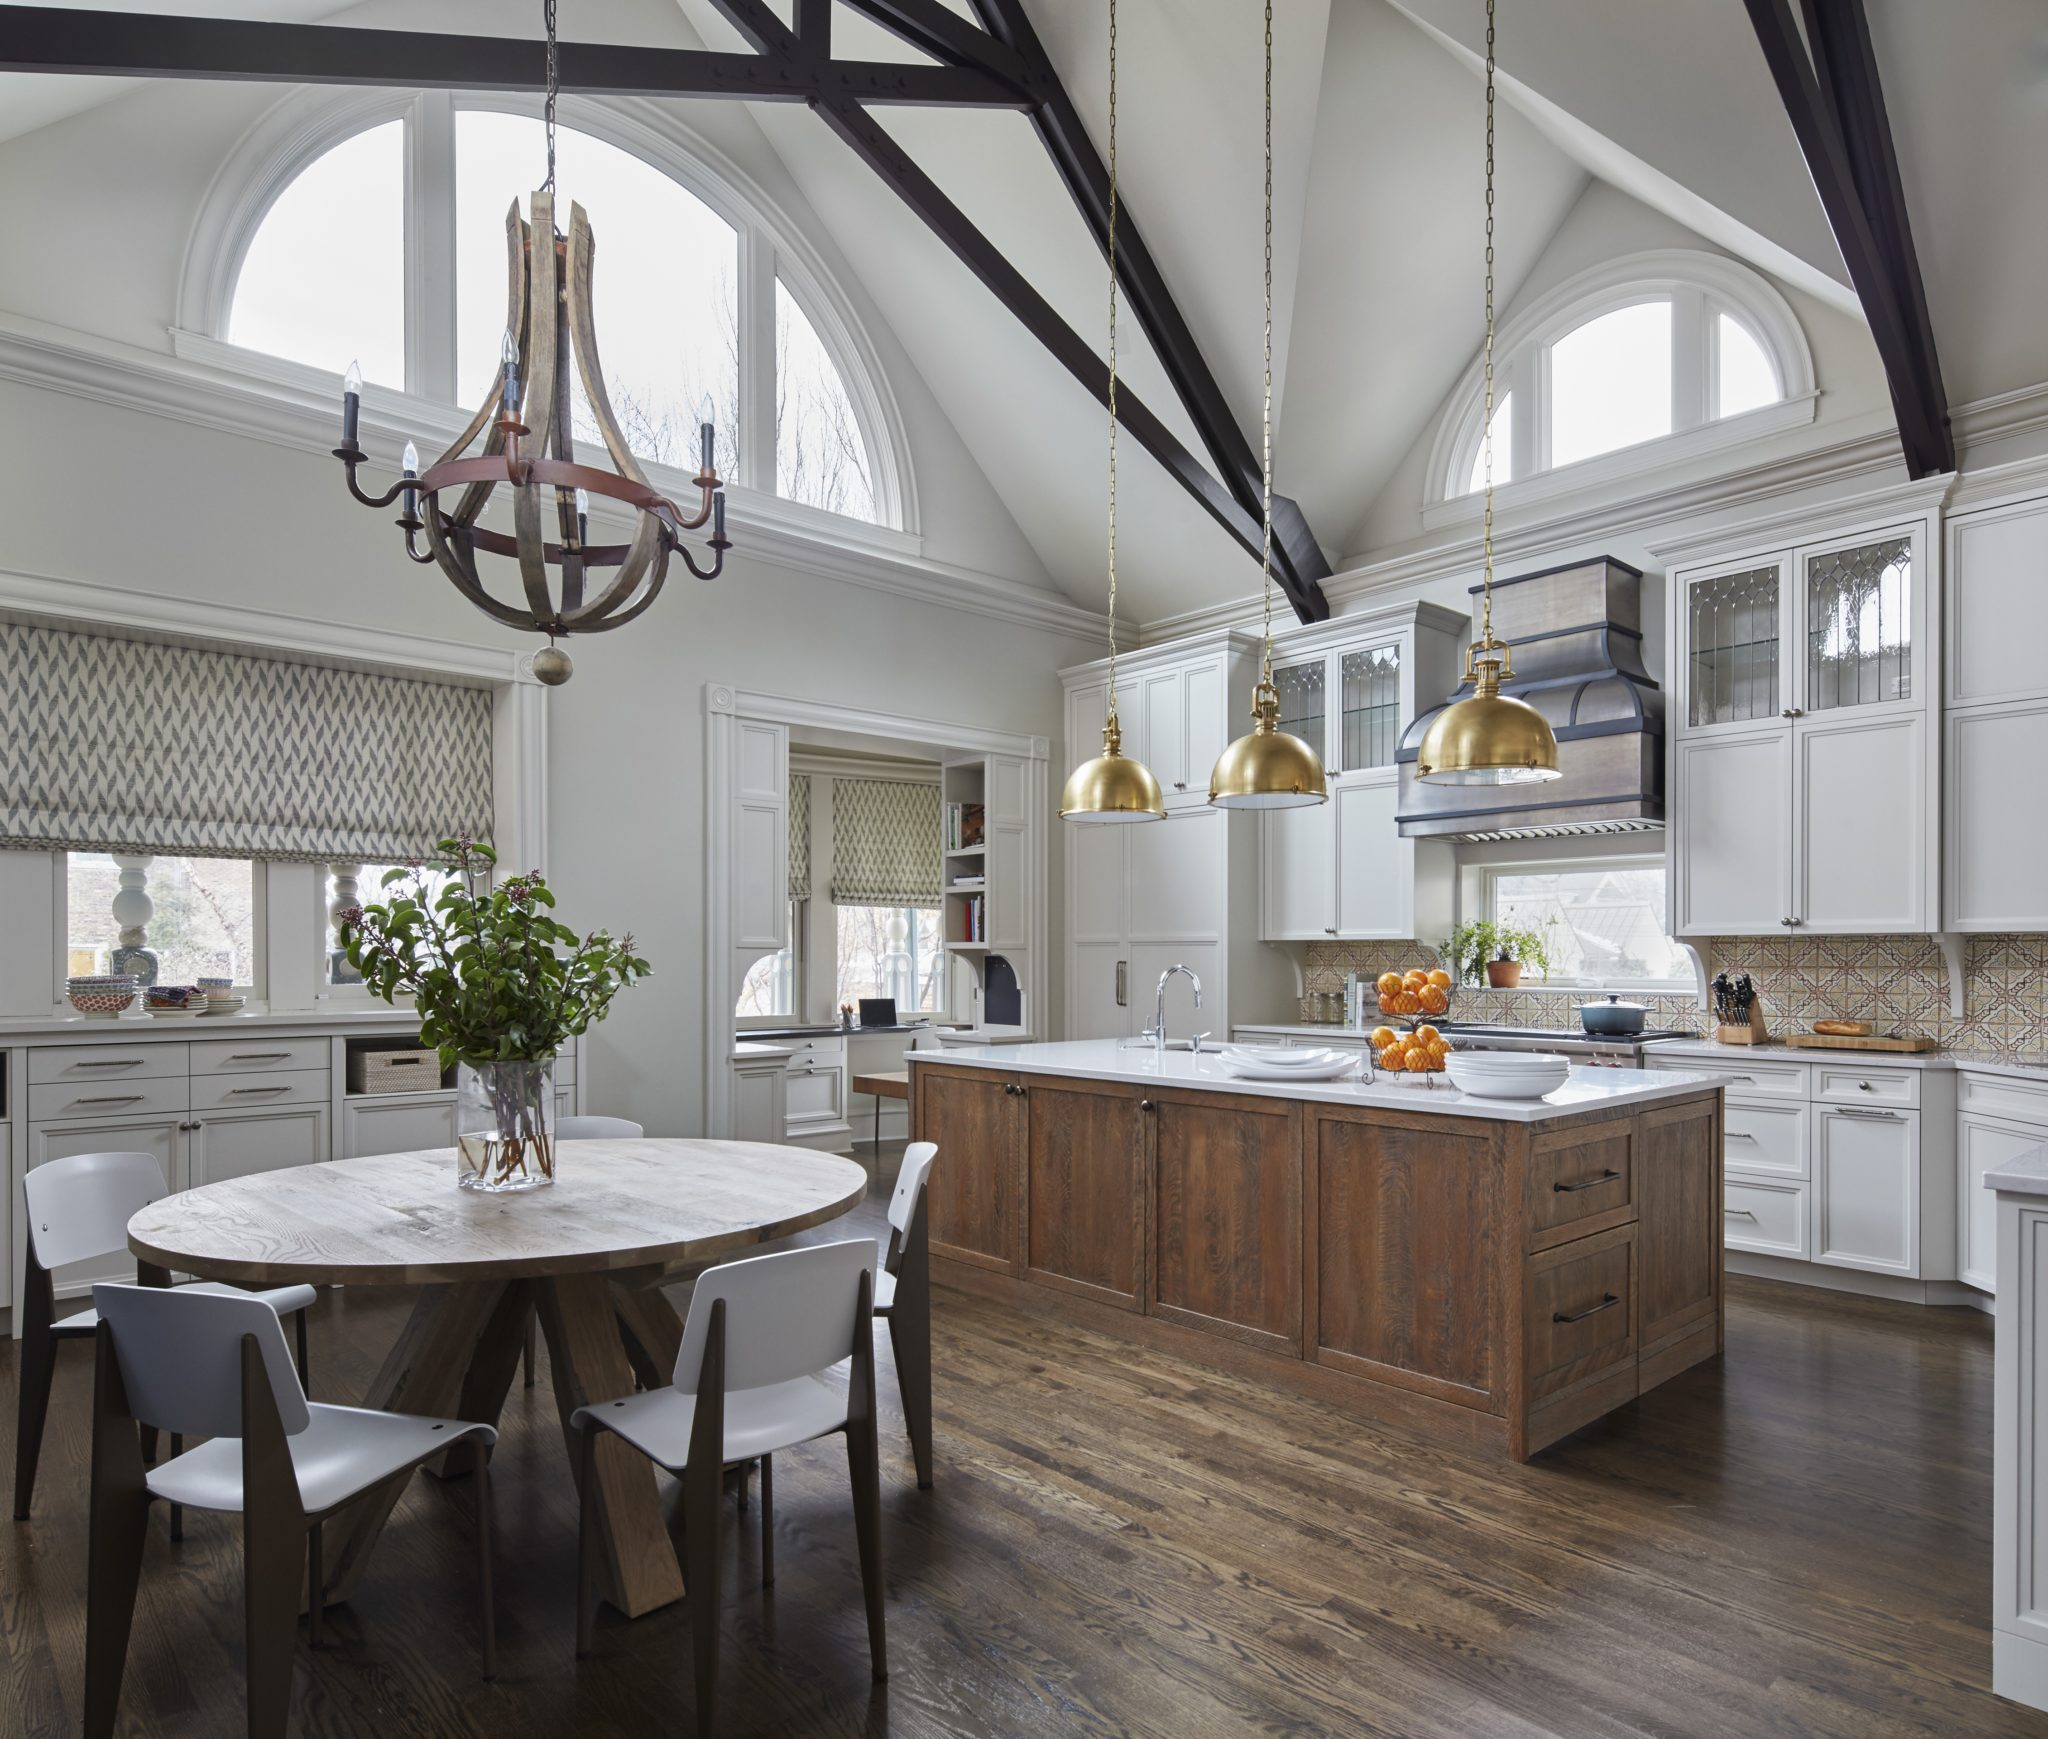 Greenview Ave. Kitchen with Brass Pendants and Rustic Wood Island by 2to5 Design